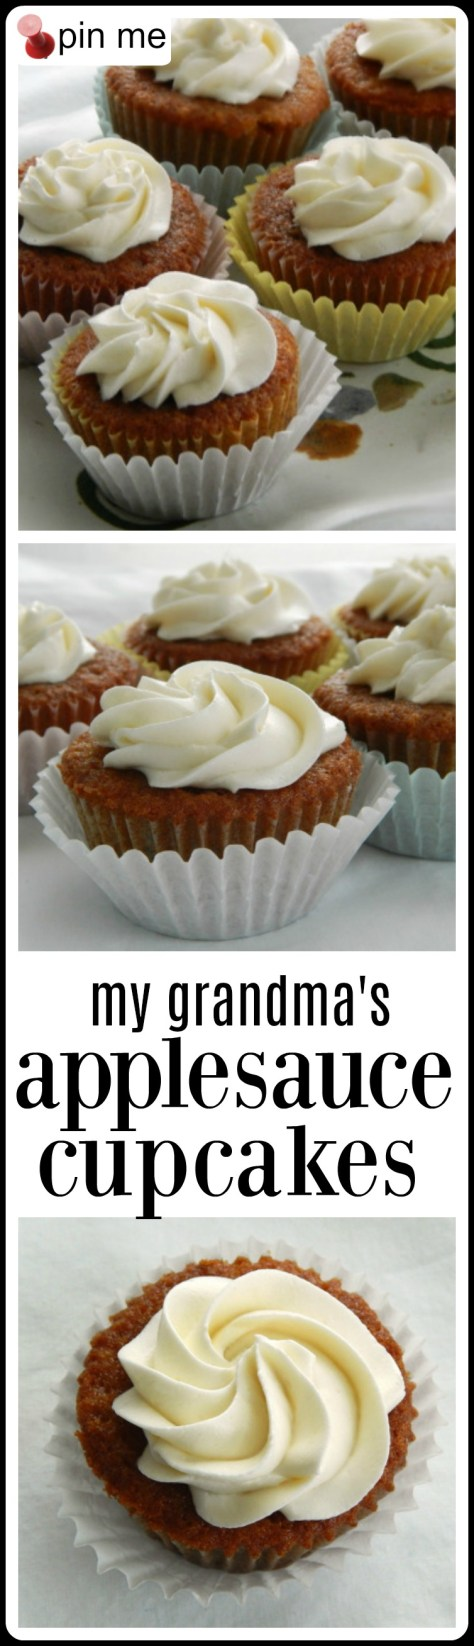 From my Grandma, who was born in 1897 - the BEST applesauce cupcakes!